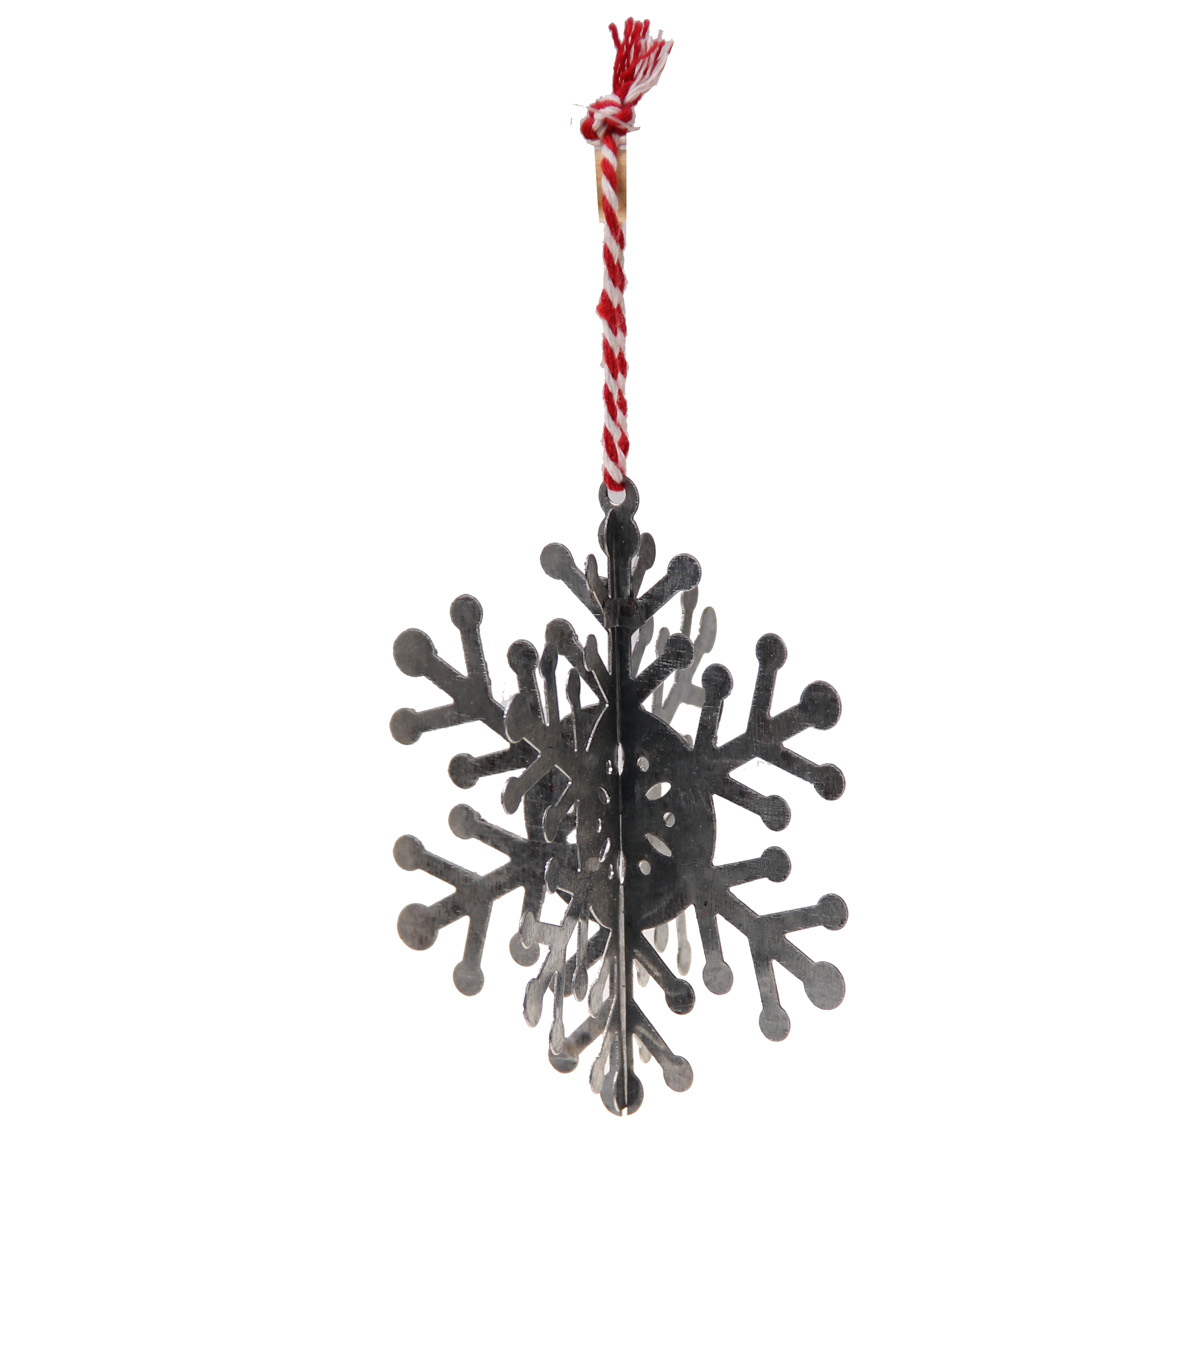 Handmade Holiday Craft Metal 3D Snowflake Ornament with Circle Center